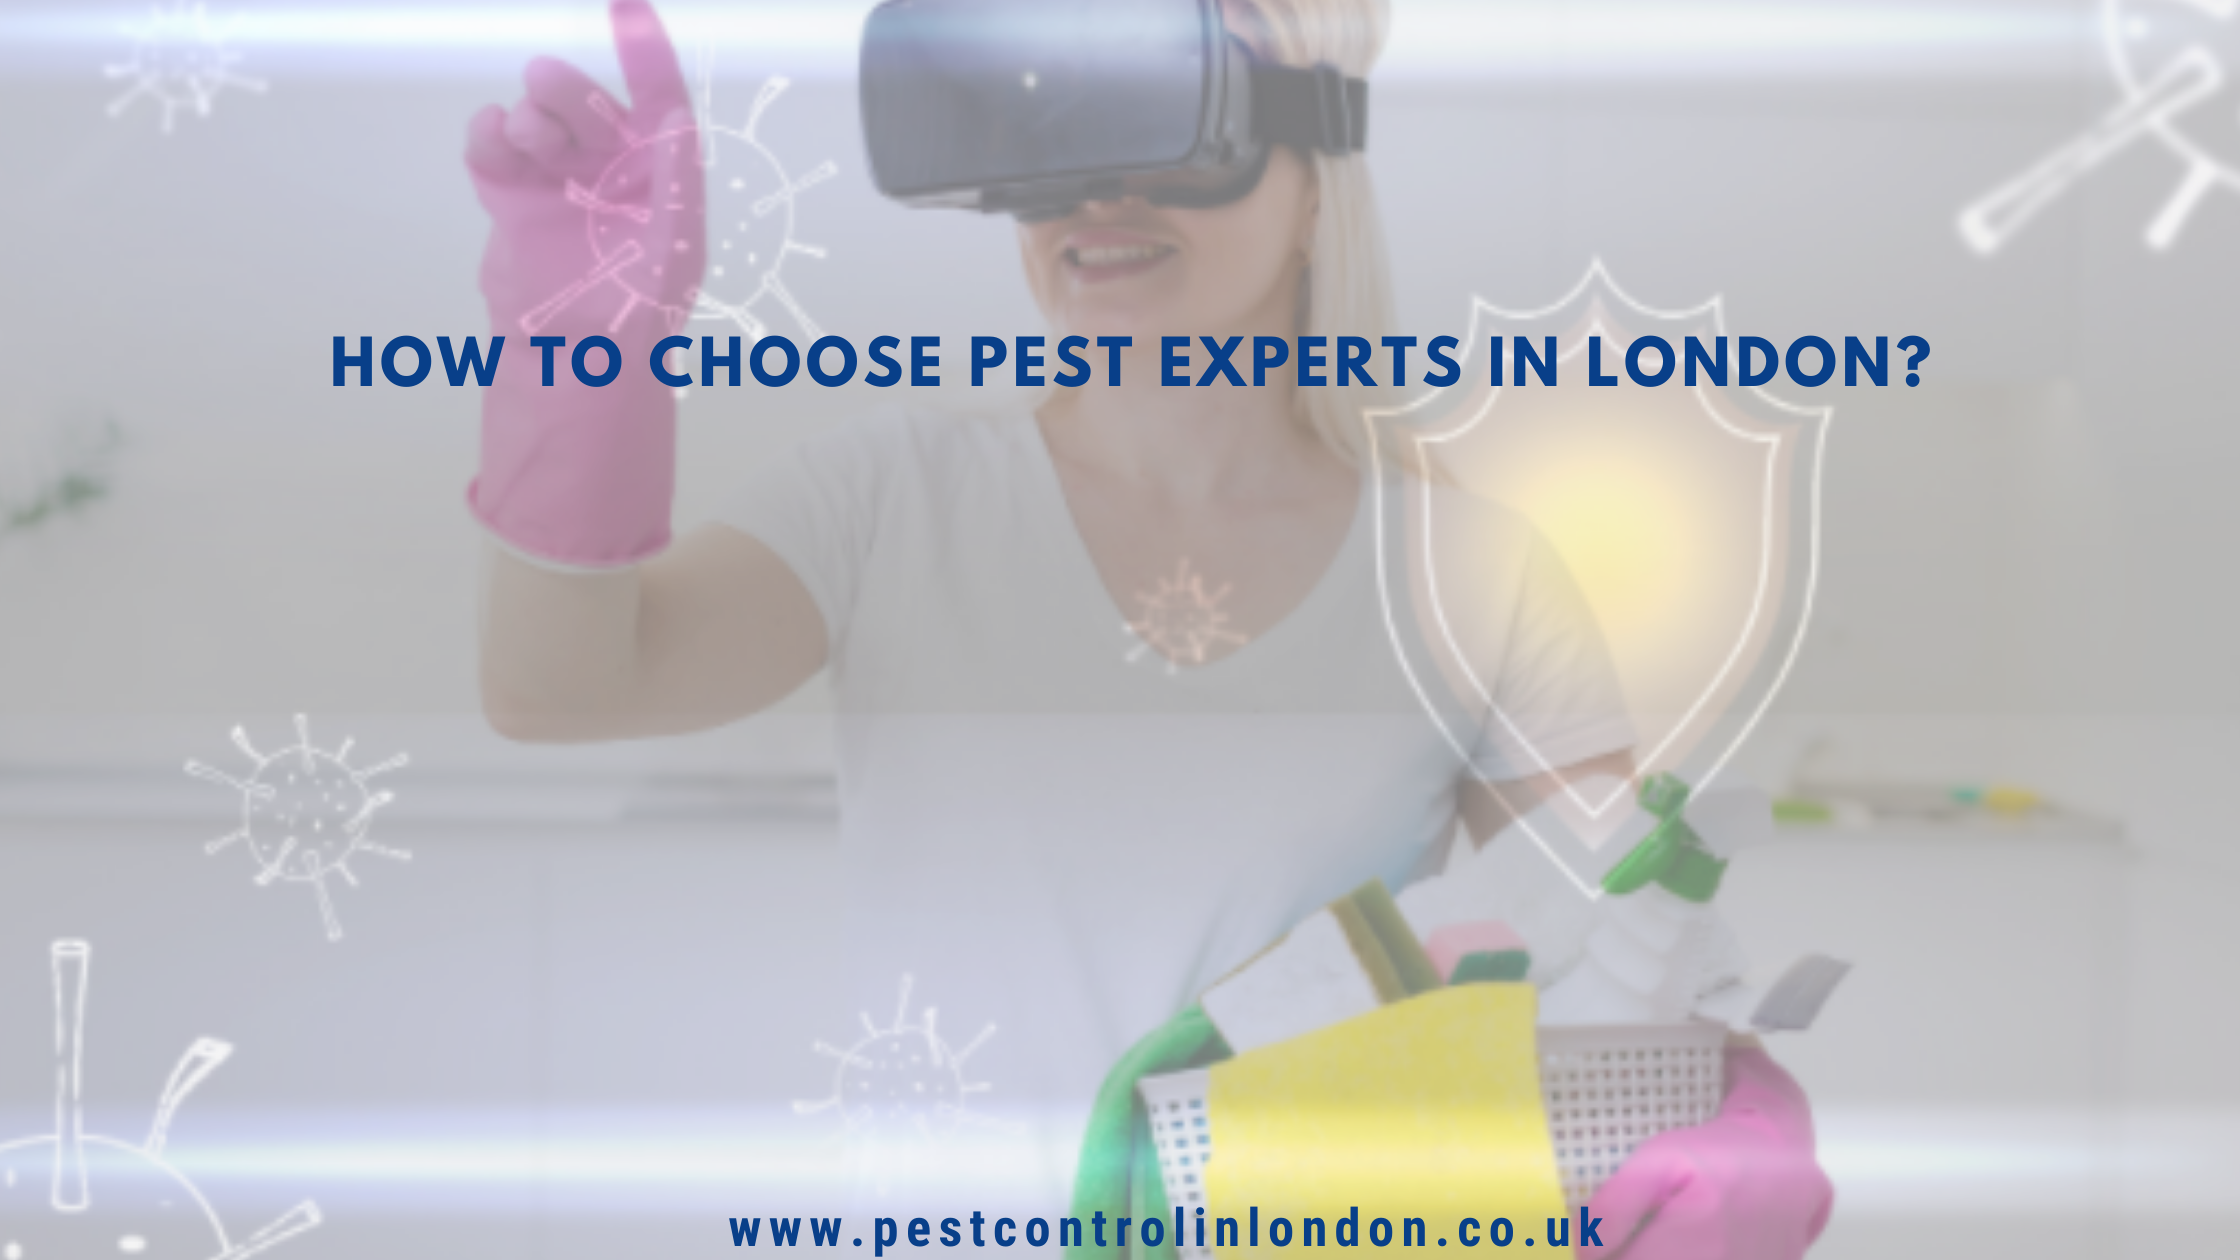 How to choose pest experts in London_